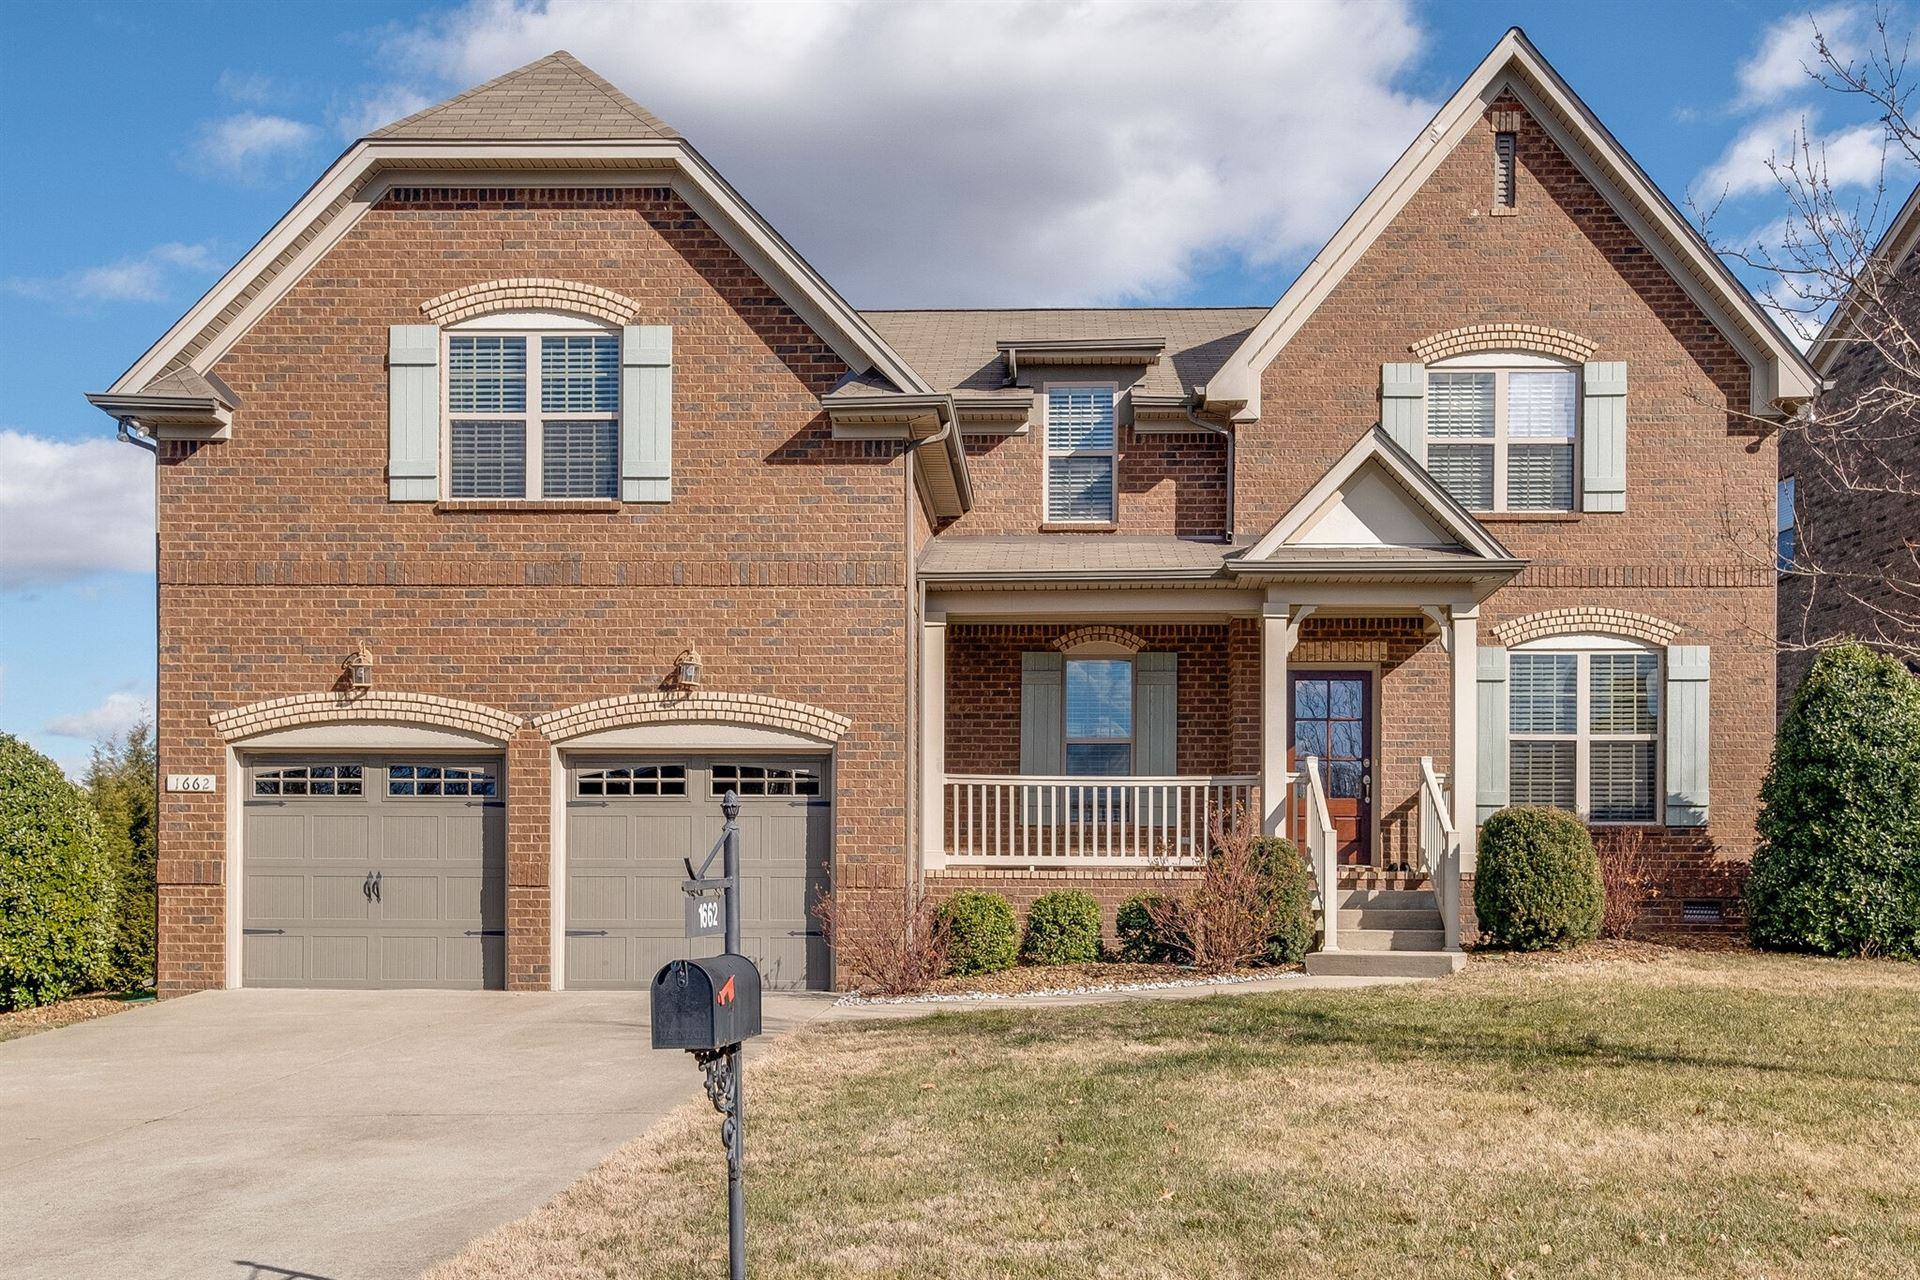 Photo of 1662 Briarcliff Dr, Nolensville, TN 37135 (MLS # 2221809)